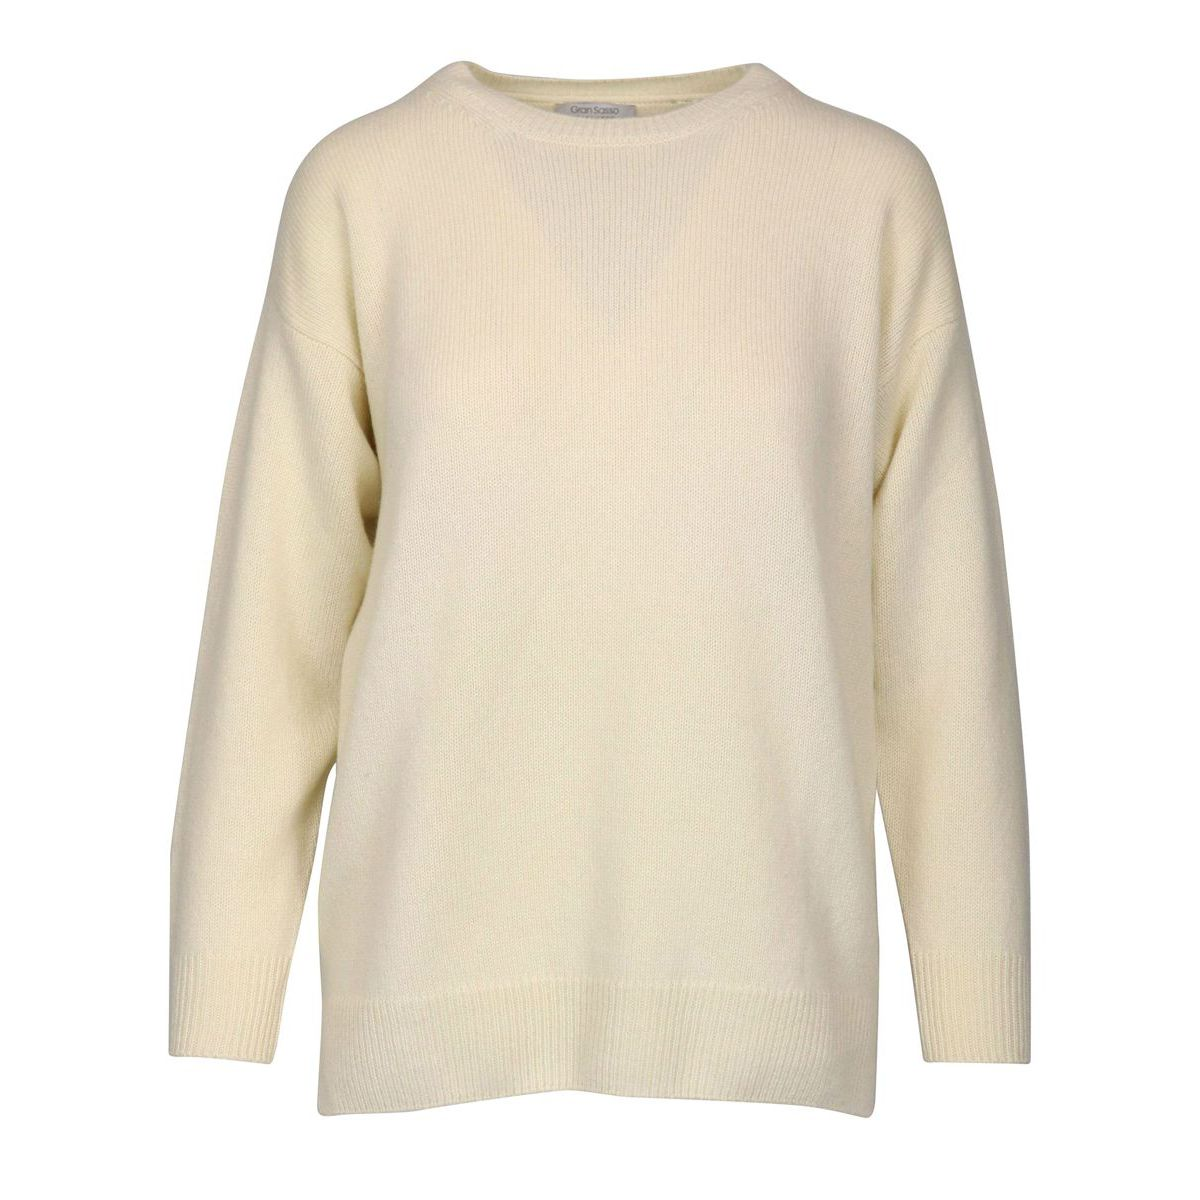 Cashmere crew neck pullover with side slits Cream Gran Sasso